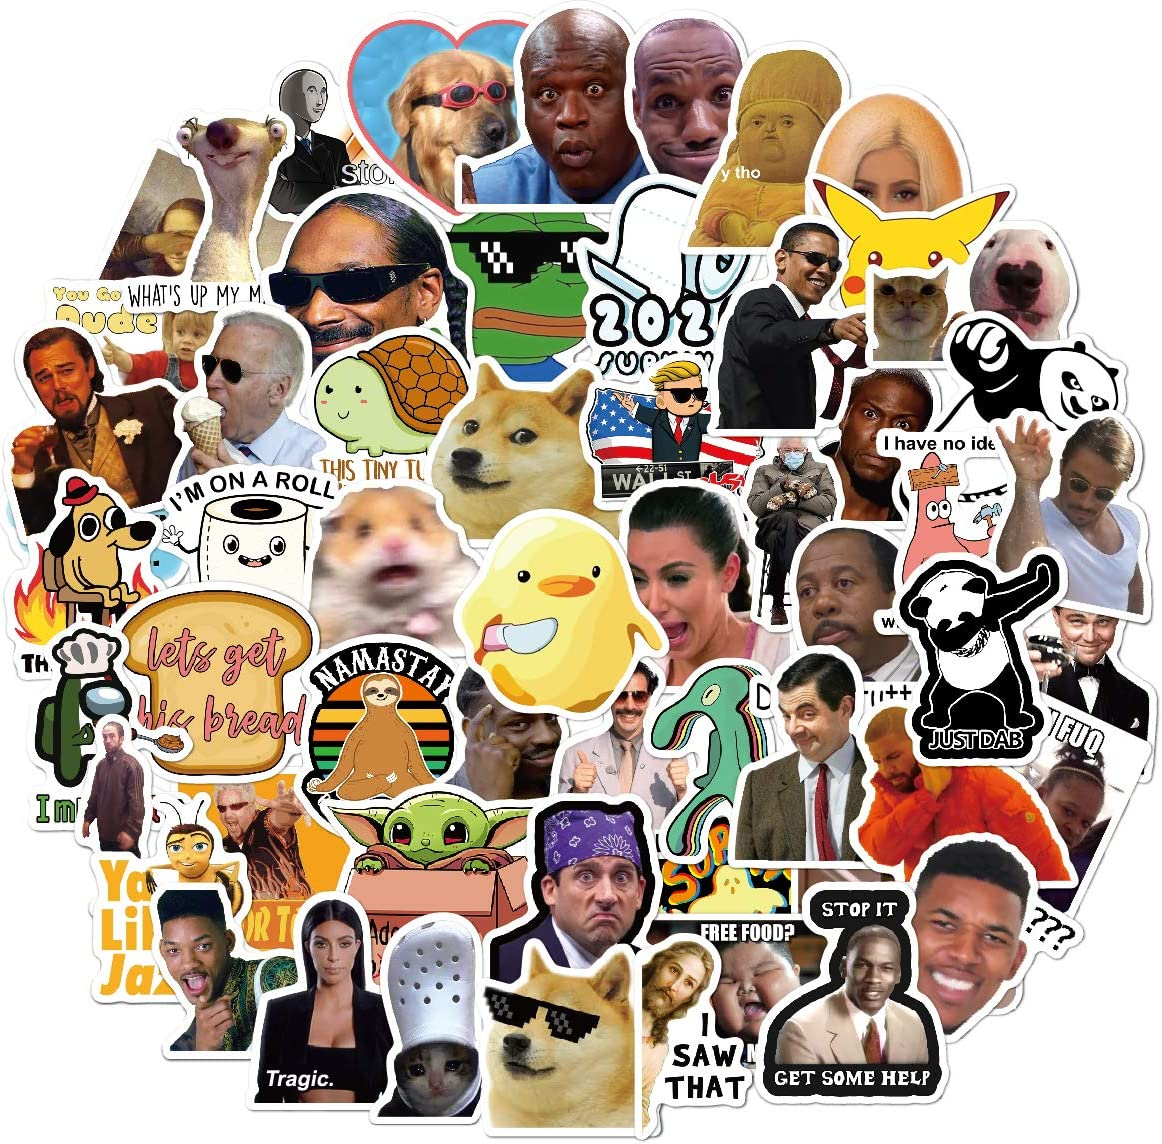 156pcs Funny Meme Vinyl Stickers Pack, Vine Stickers for Laptop, iPhone, Water Bottles, Computer, and Hydro Flask, DIY Decor for Bumper Wall (Meme)